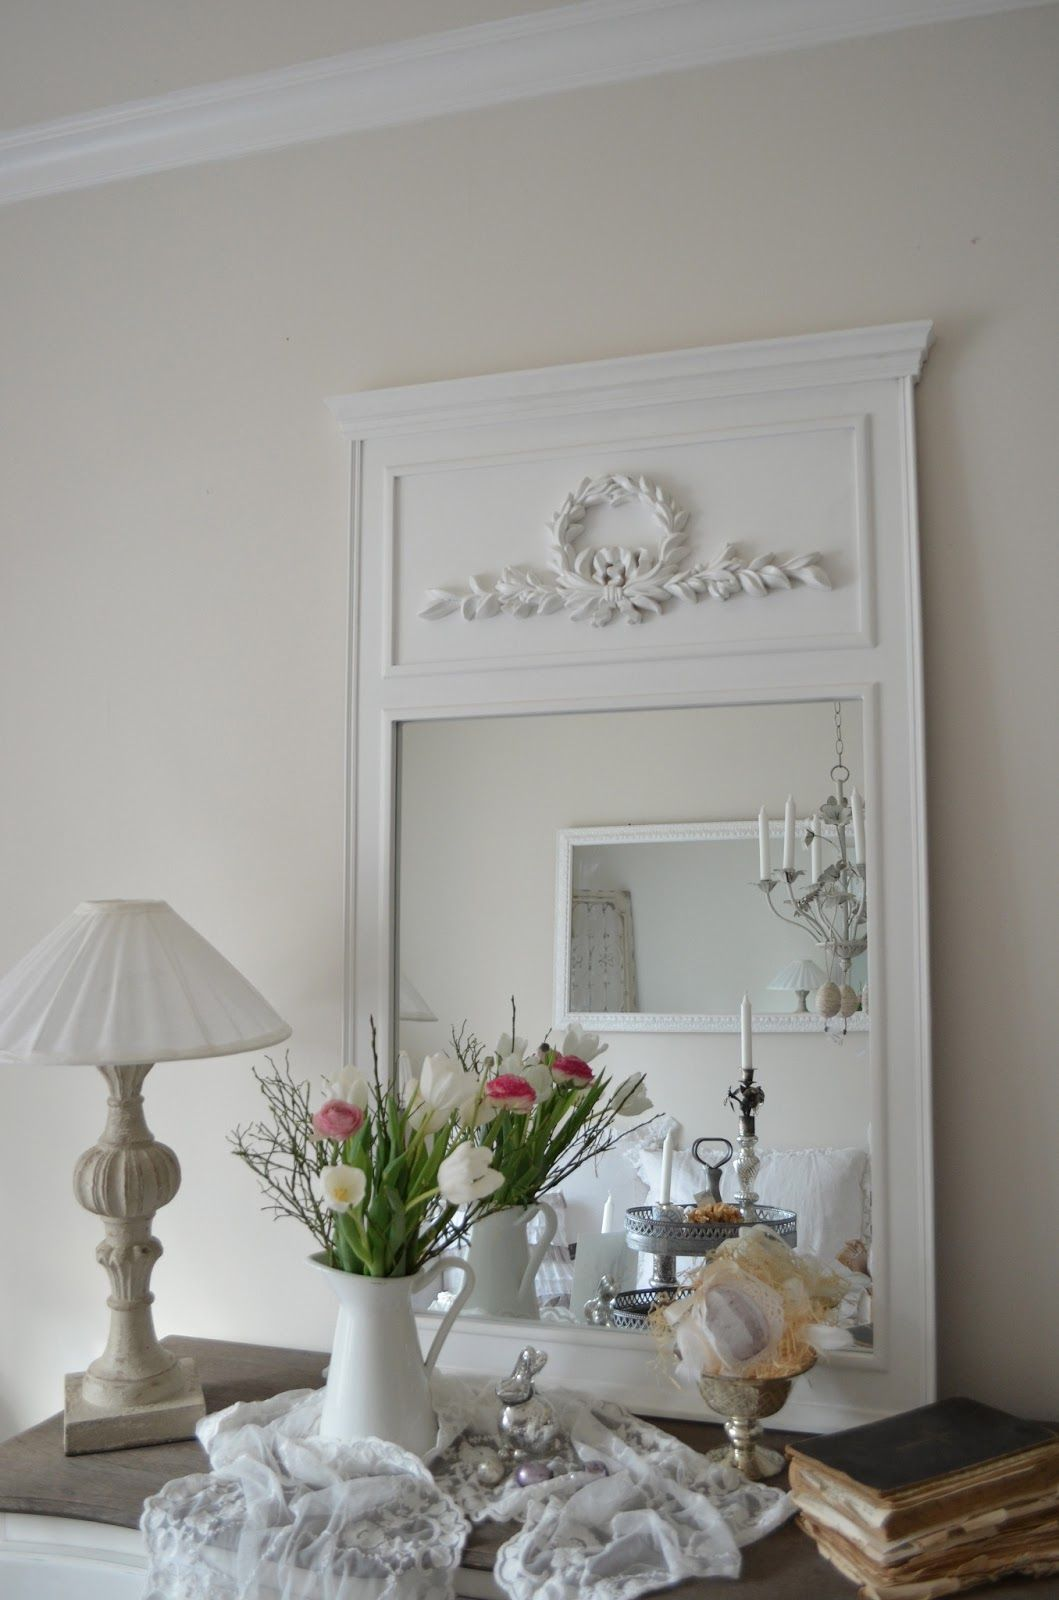 Living Room Mirror, Top Cabinet Décor. White, Grey, Black, Chippy, Shabby Chic, Whitewashed, Cottage, French Country, Rustic, Swedish decor Idea. ***Pinned by oldattic ***.